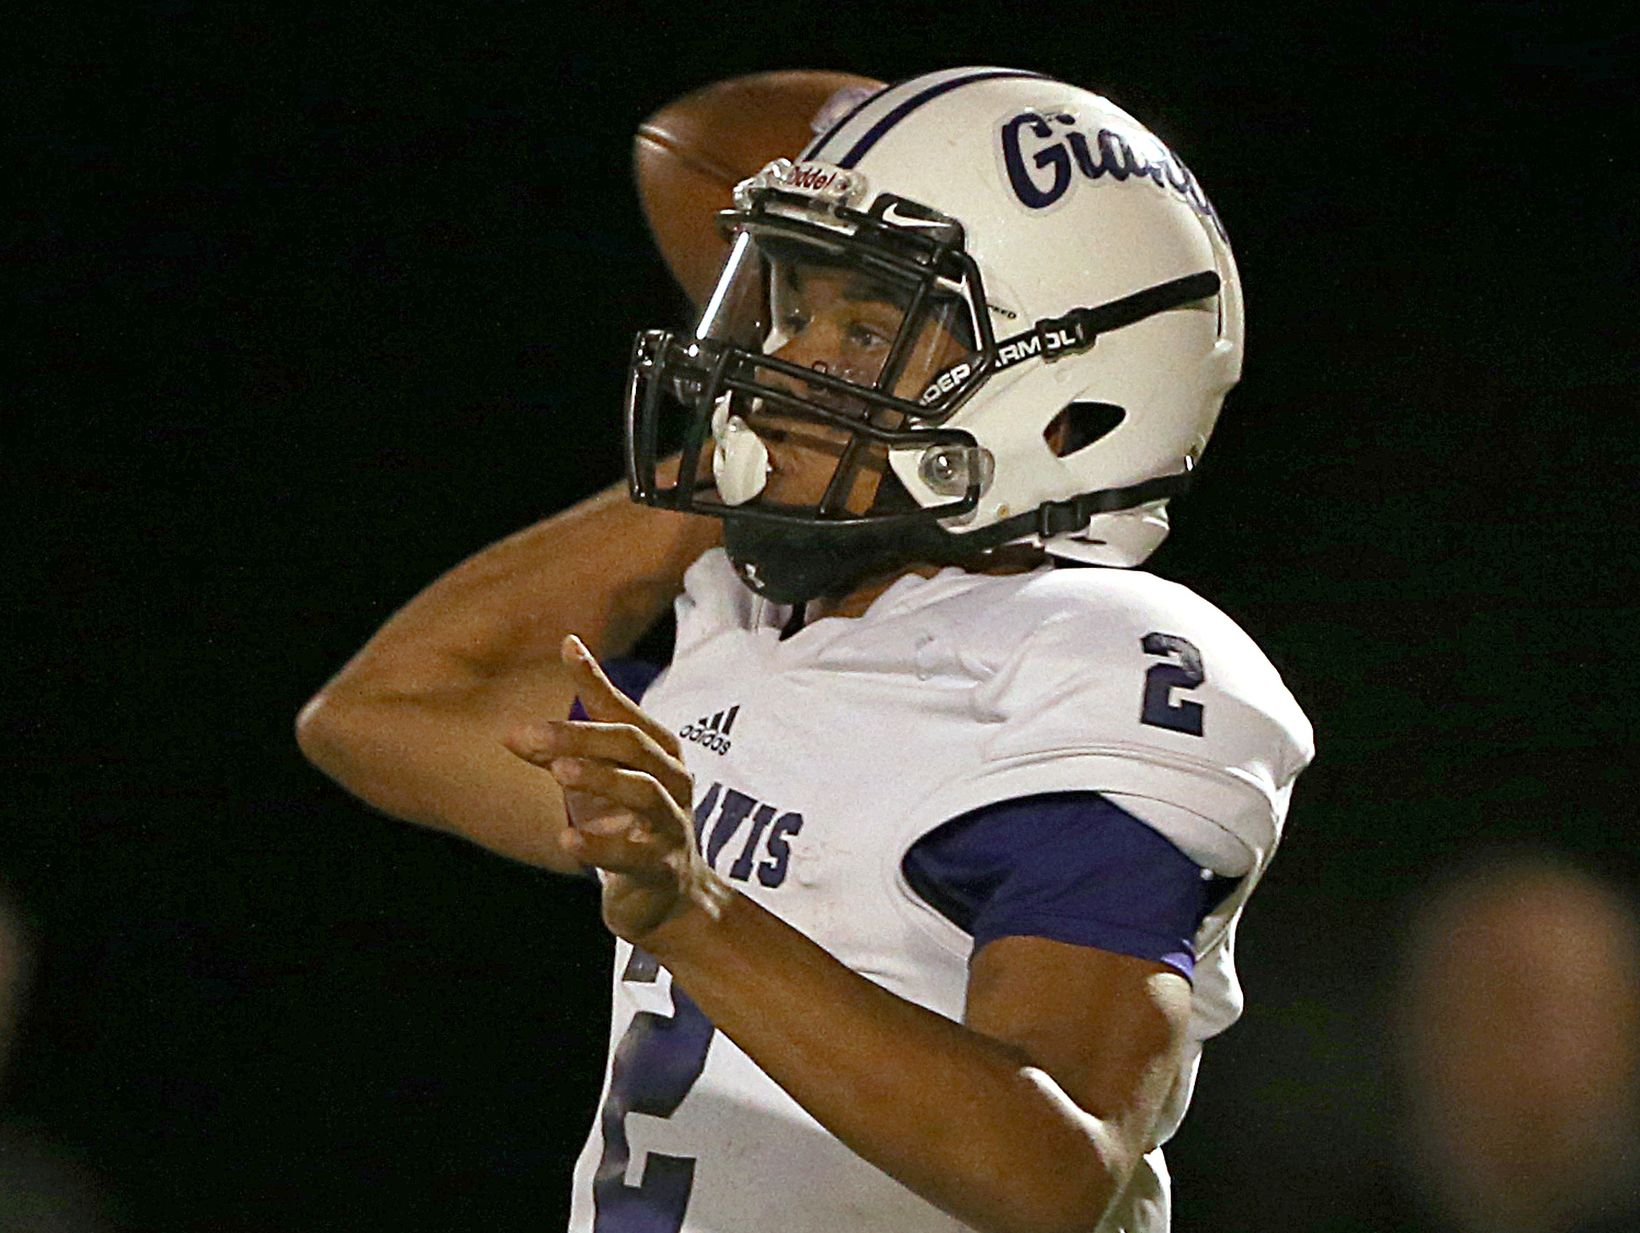 Ben Davis Giants Reese Taylor (2) passes to Ben Davis Giants Noah Thomas (8) who runs in an 85-yard touchdown during first half action of class 6A sectional 5 semifinals, Brownsburg, Ind., Friday, October 28, 2016.